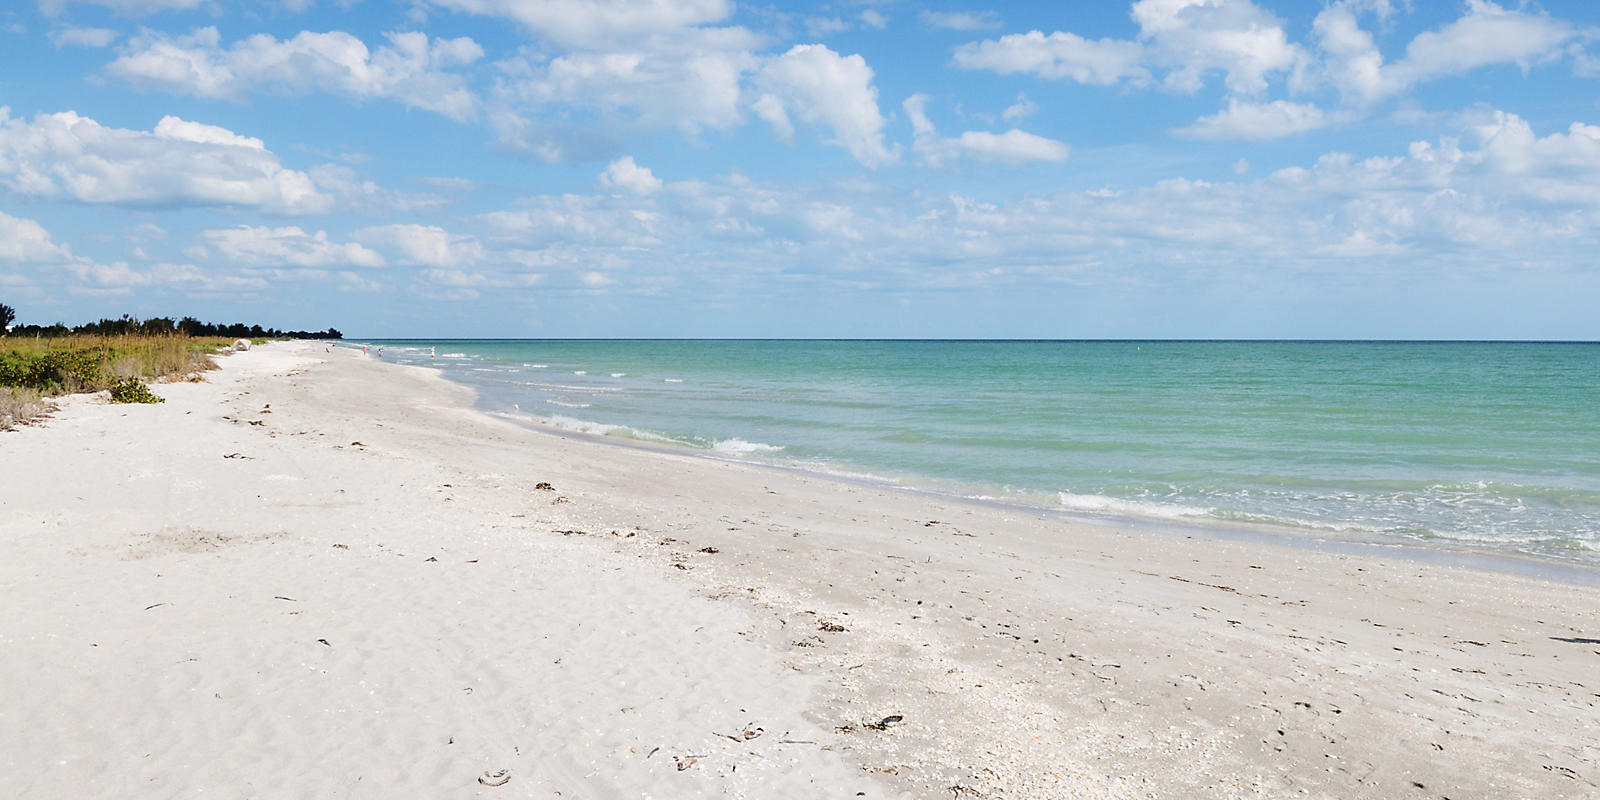 Bowman Beach Ocean gulf view in Sanibel Island